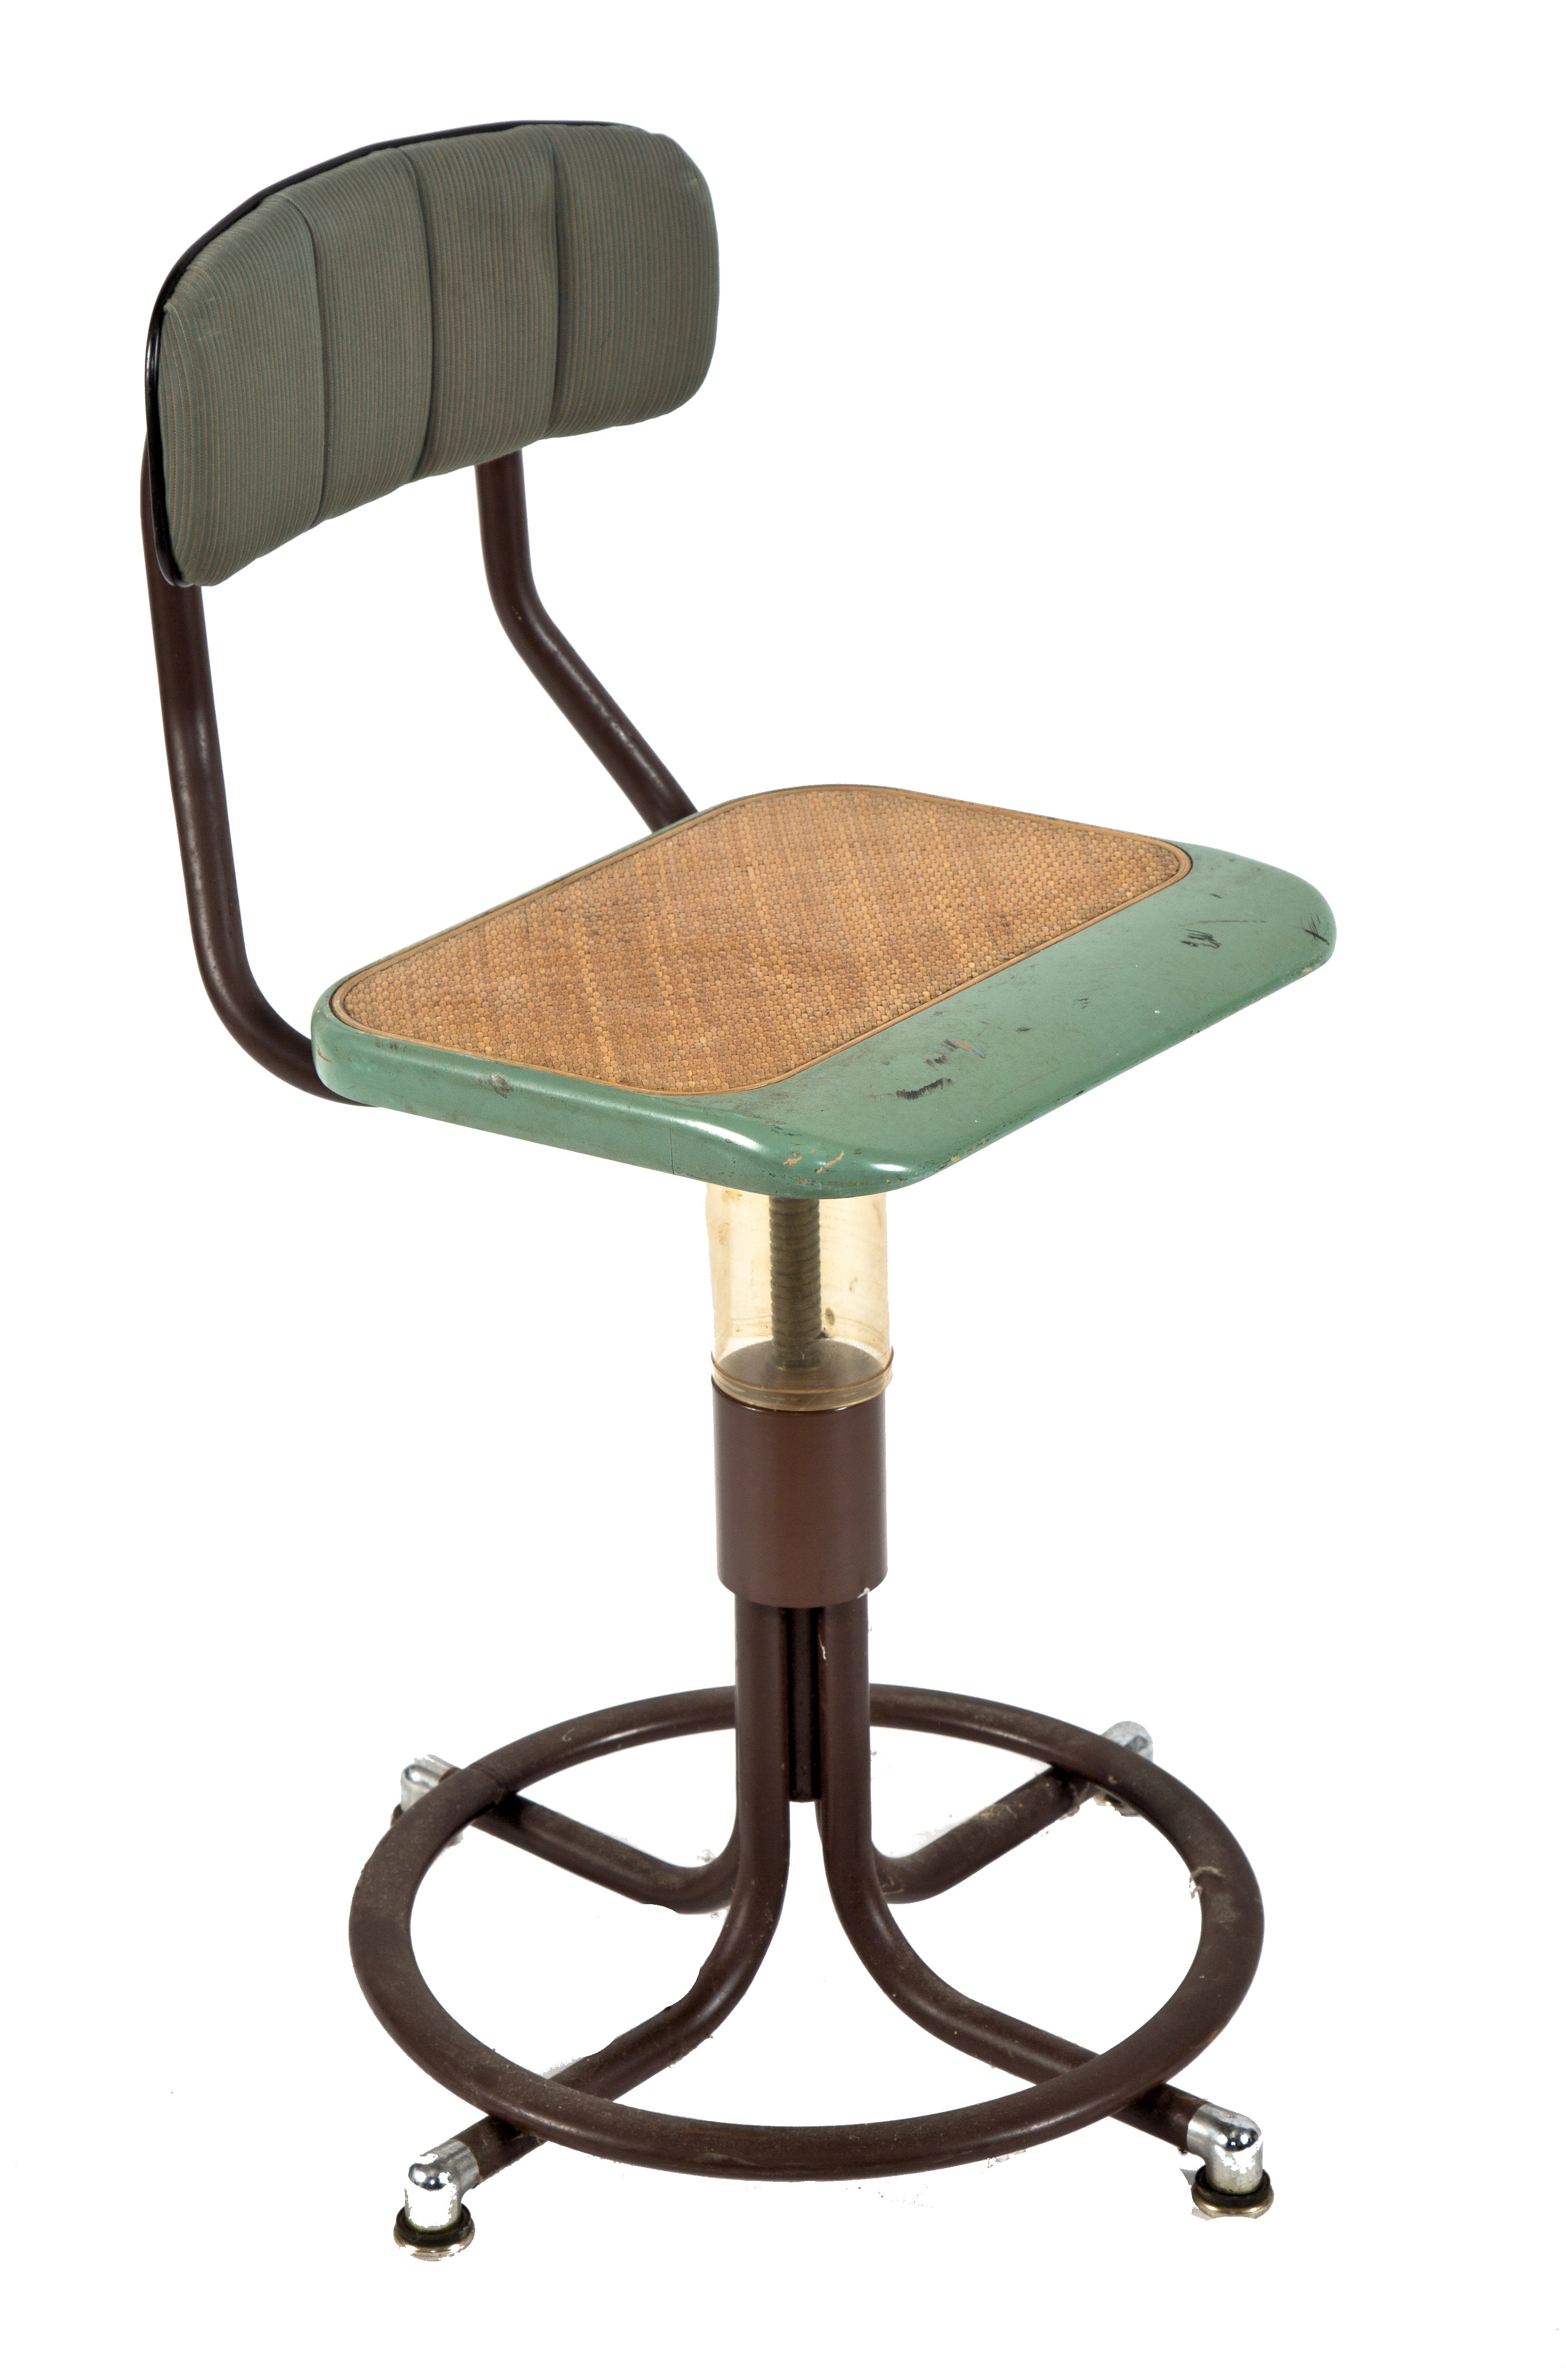 Superb One Of Two Nearly Identical American Depression Era Telephone Company Switchboard Chairs Or Stools With Adjustable Height Seat And Curvaceous Inzonedesignstudio Interior Chair Design Inzonedesignstudiocom